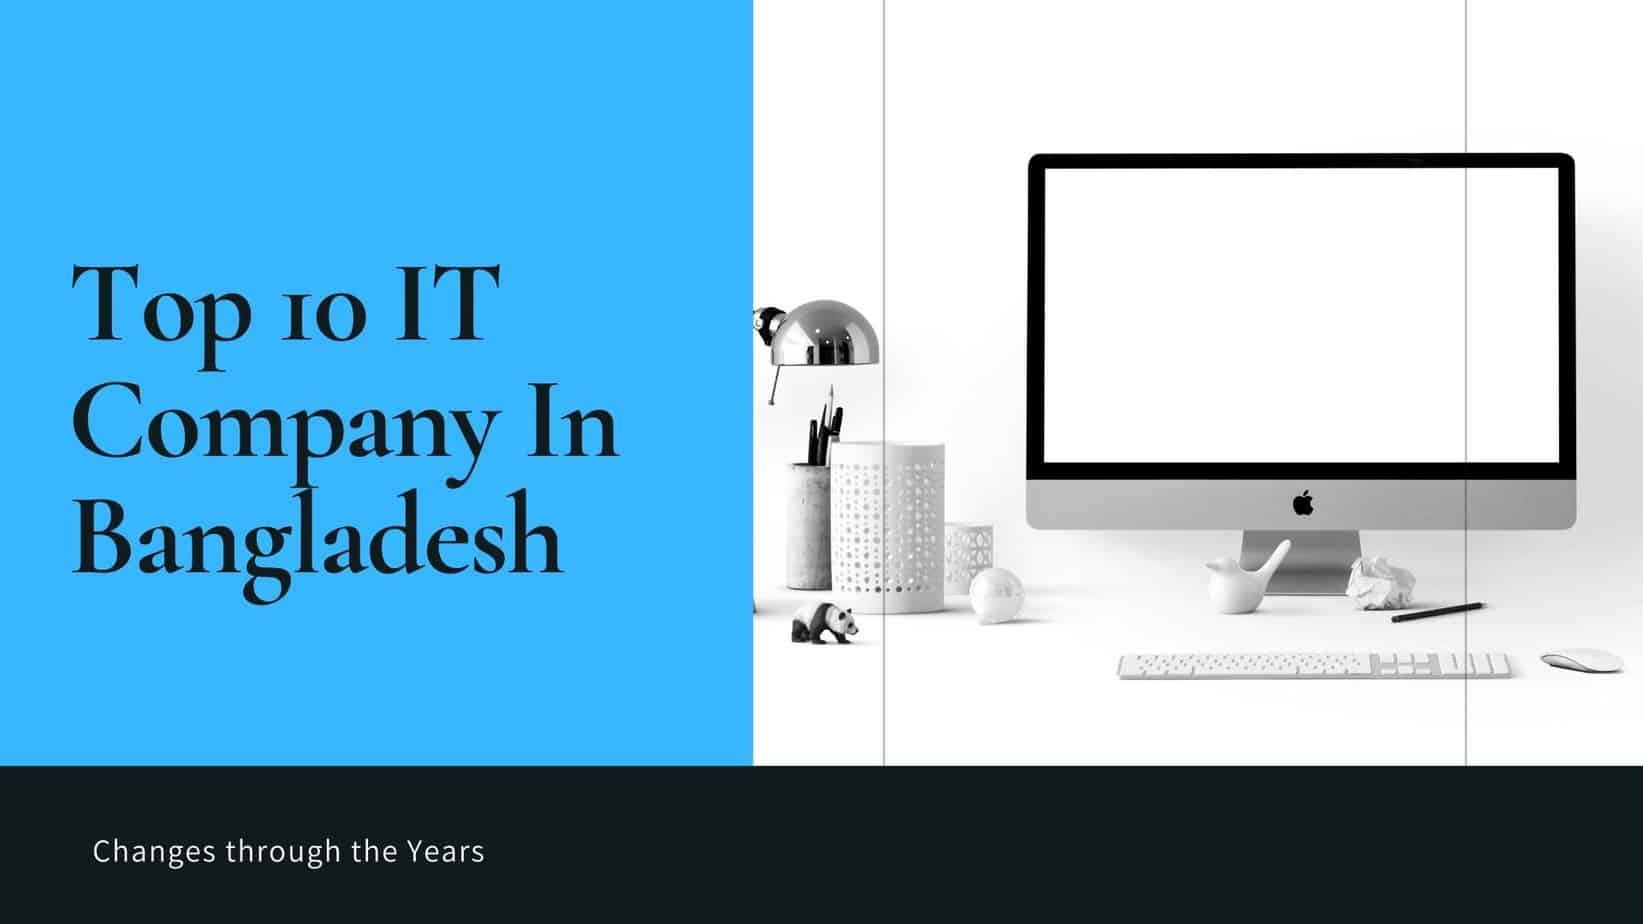 Top 10 IT Company In Bangladesh where one of developerlighthouse